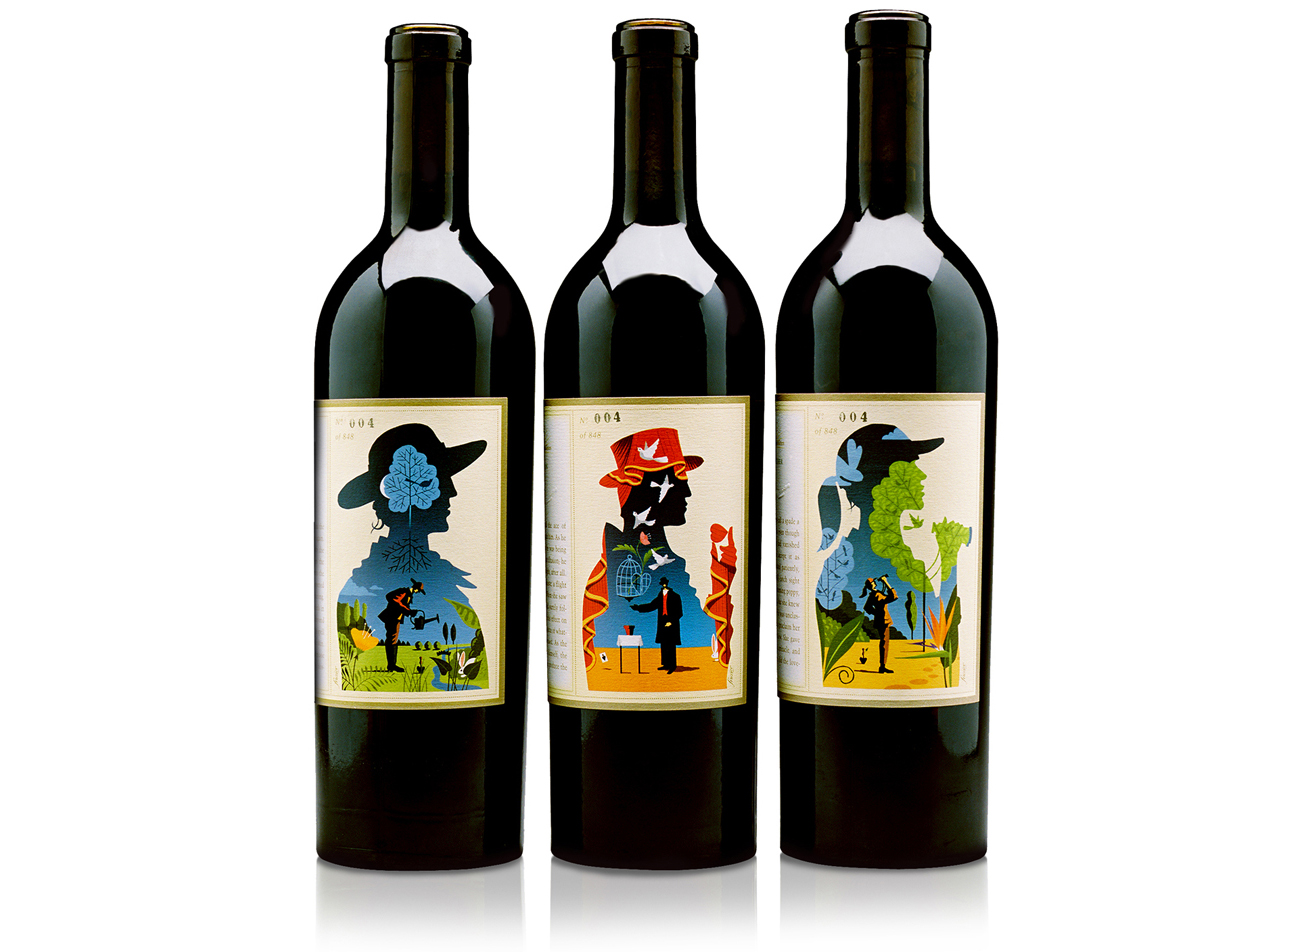 Realm Cellars. Limited edition wine labels and packaging. Numbered and ridiculously expensive.